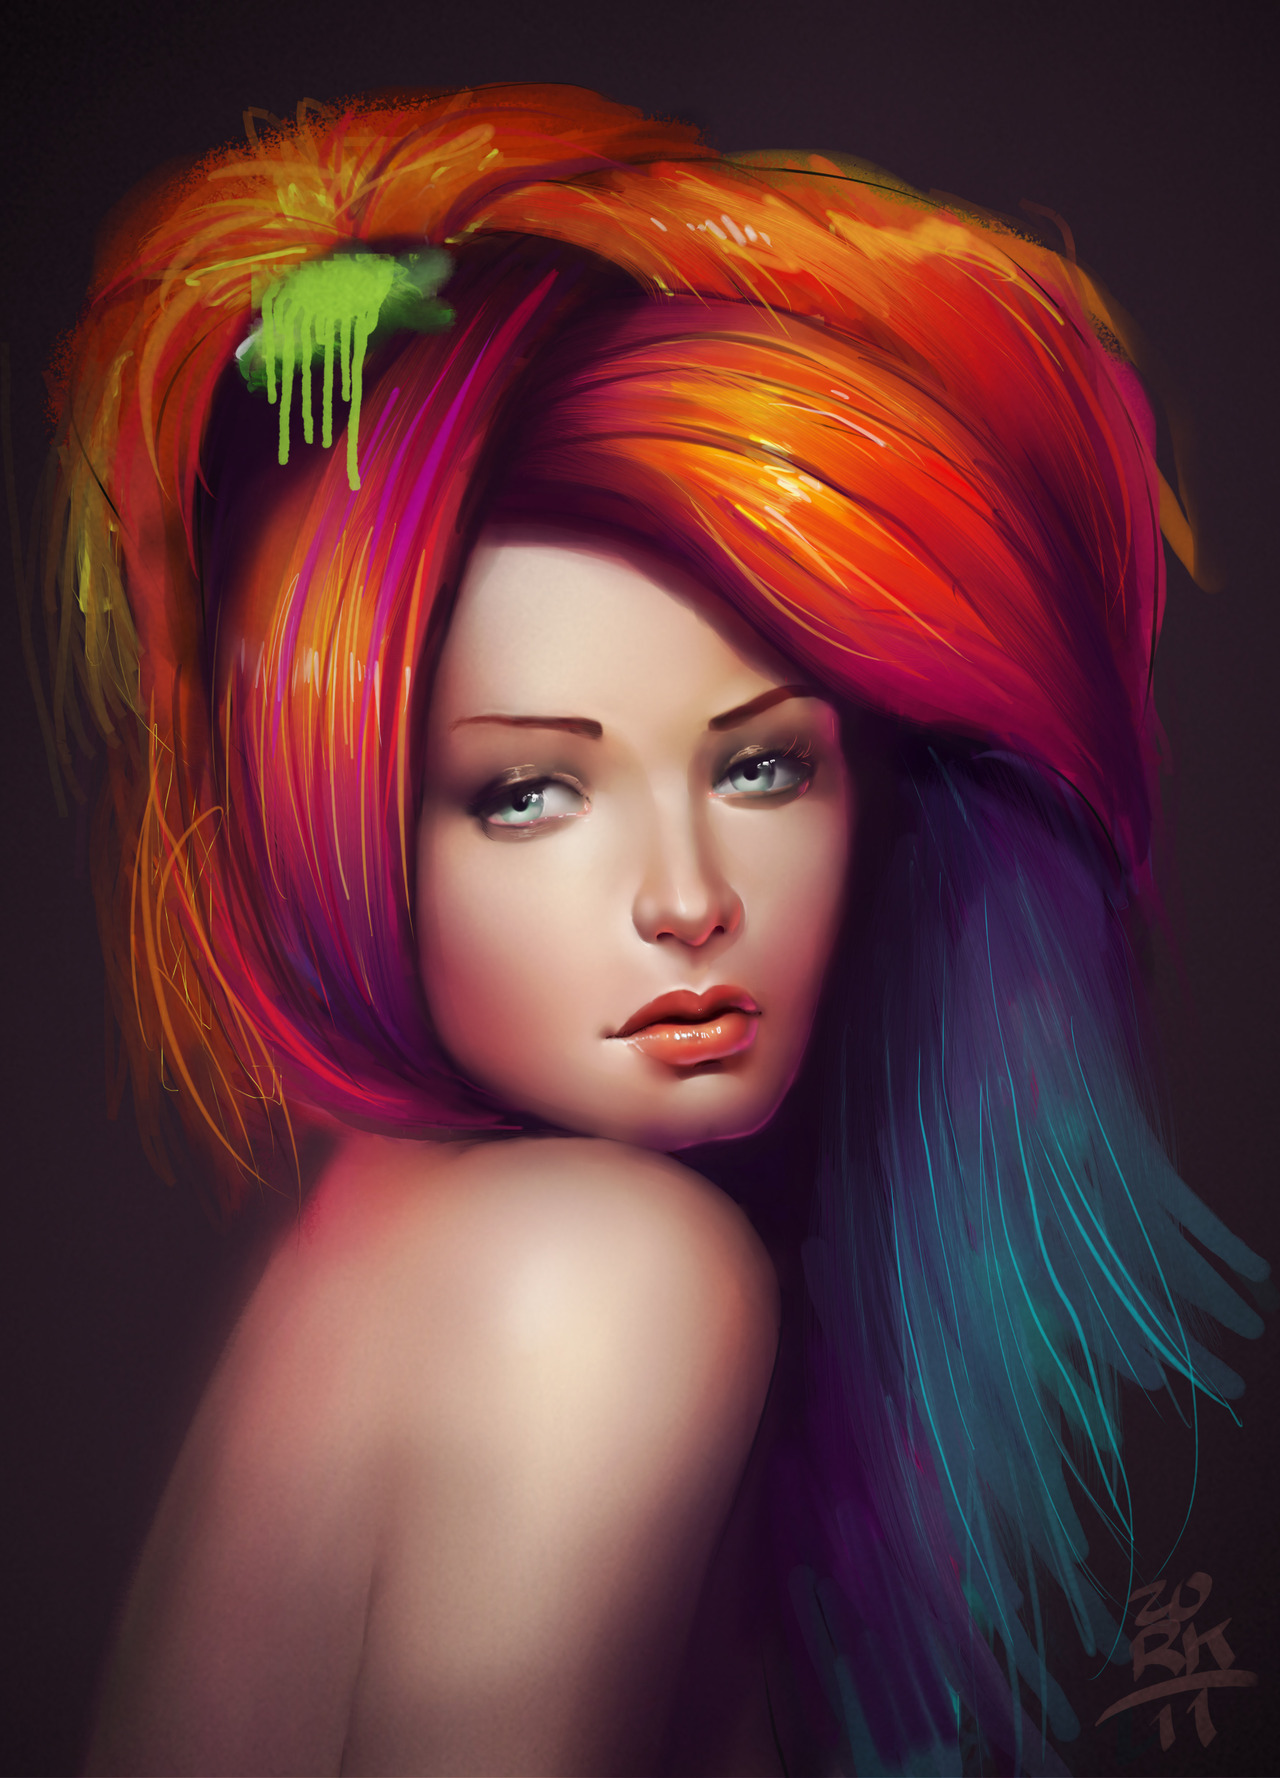 Digital art selected for the Daily Inspiration #1225